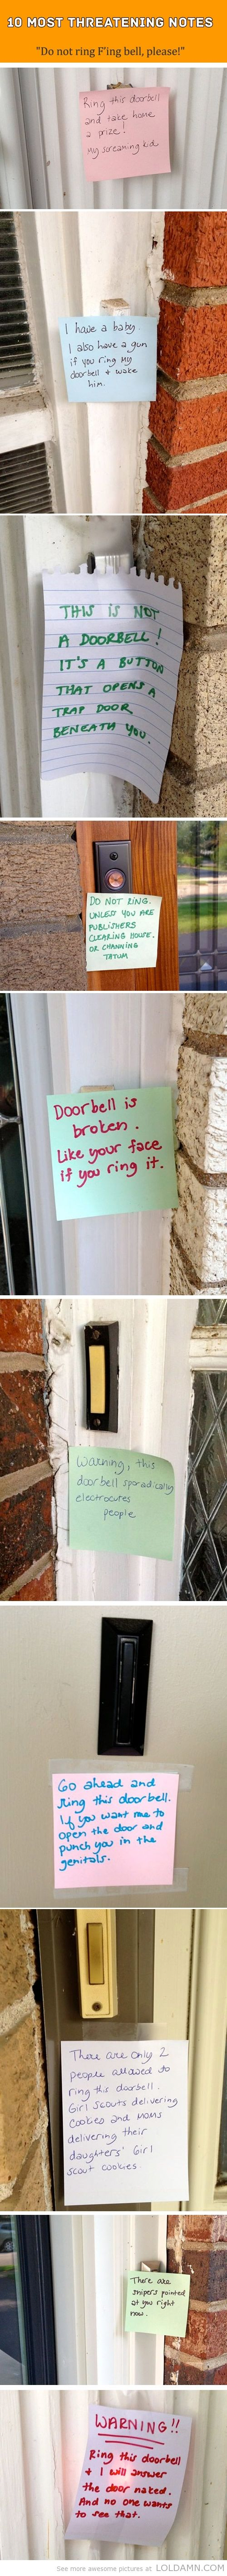 "10 hilarious ""do not ring doorbell"" notes. The 4th one is awesome!"